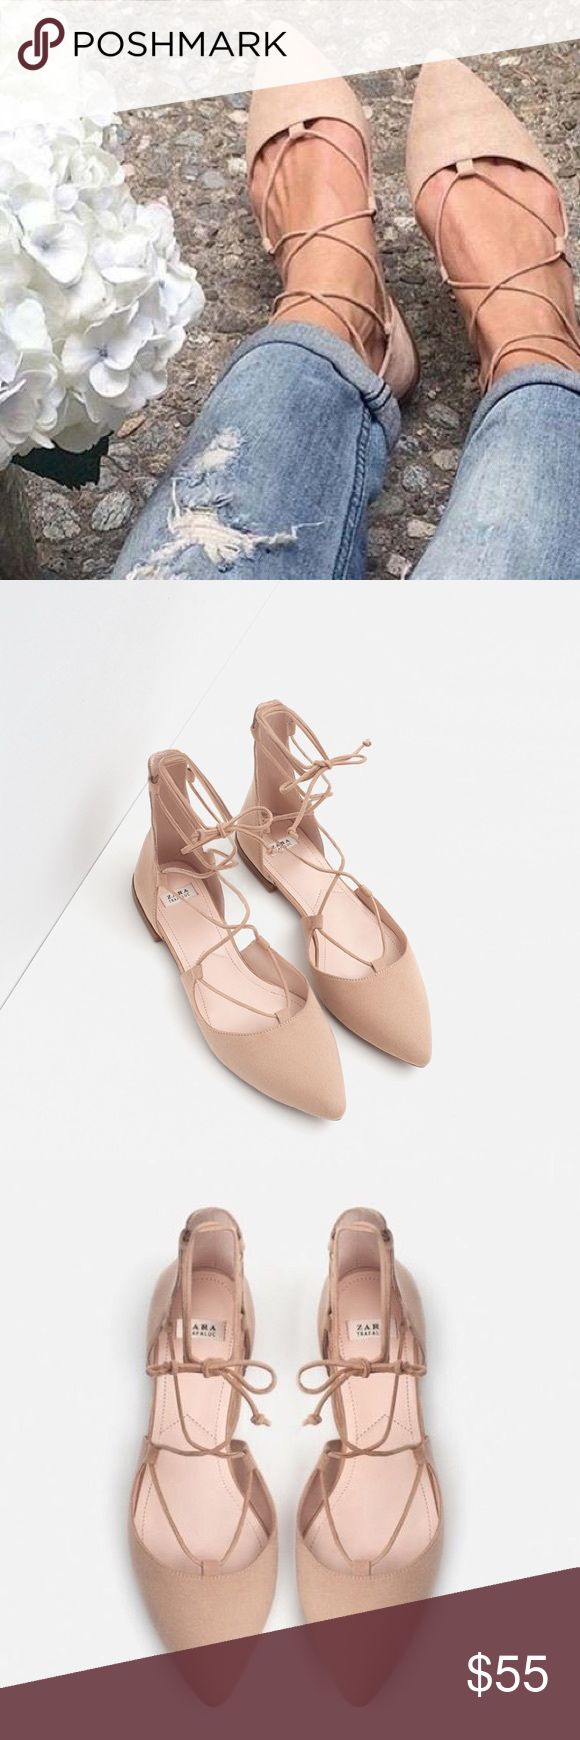 Pointed lace up ballerina flats Worn once. Pointed beige/tan flats with lace up straps and ankle bow fastening. Zara Shoes Flats & Loafers